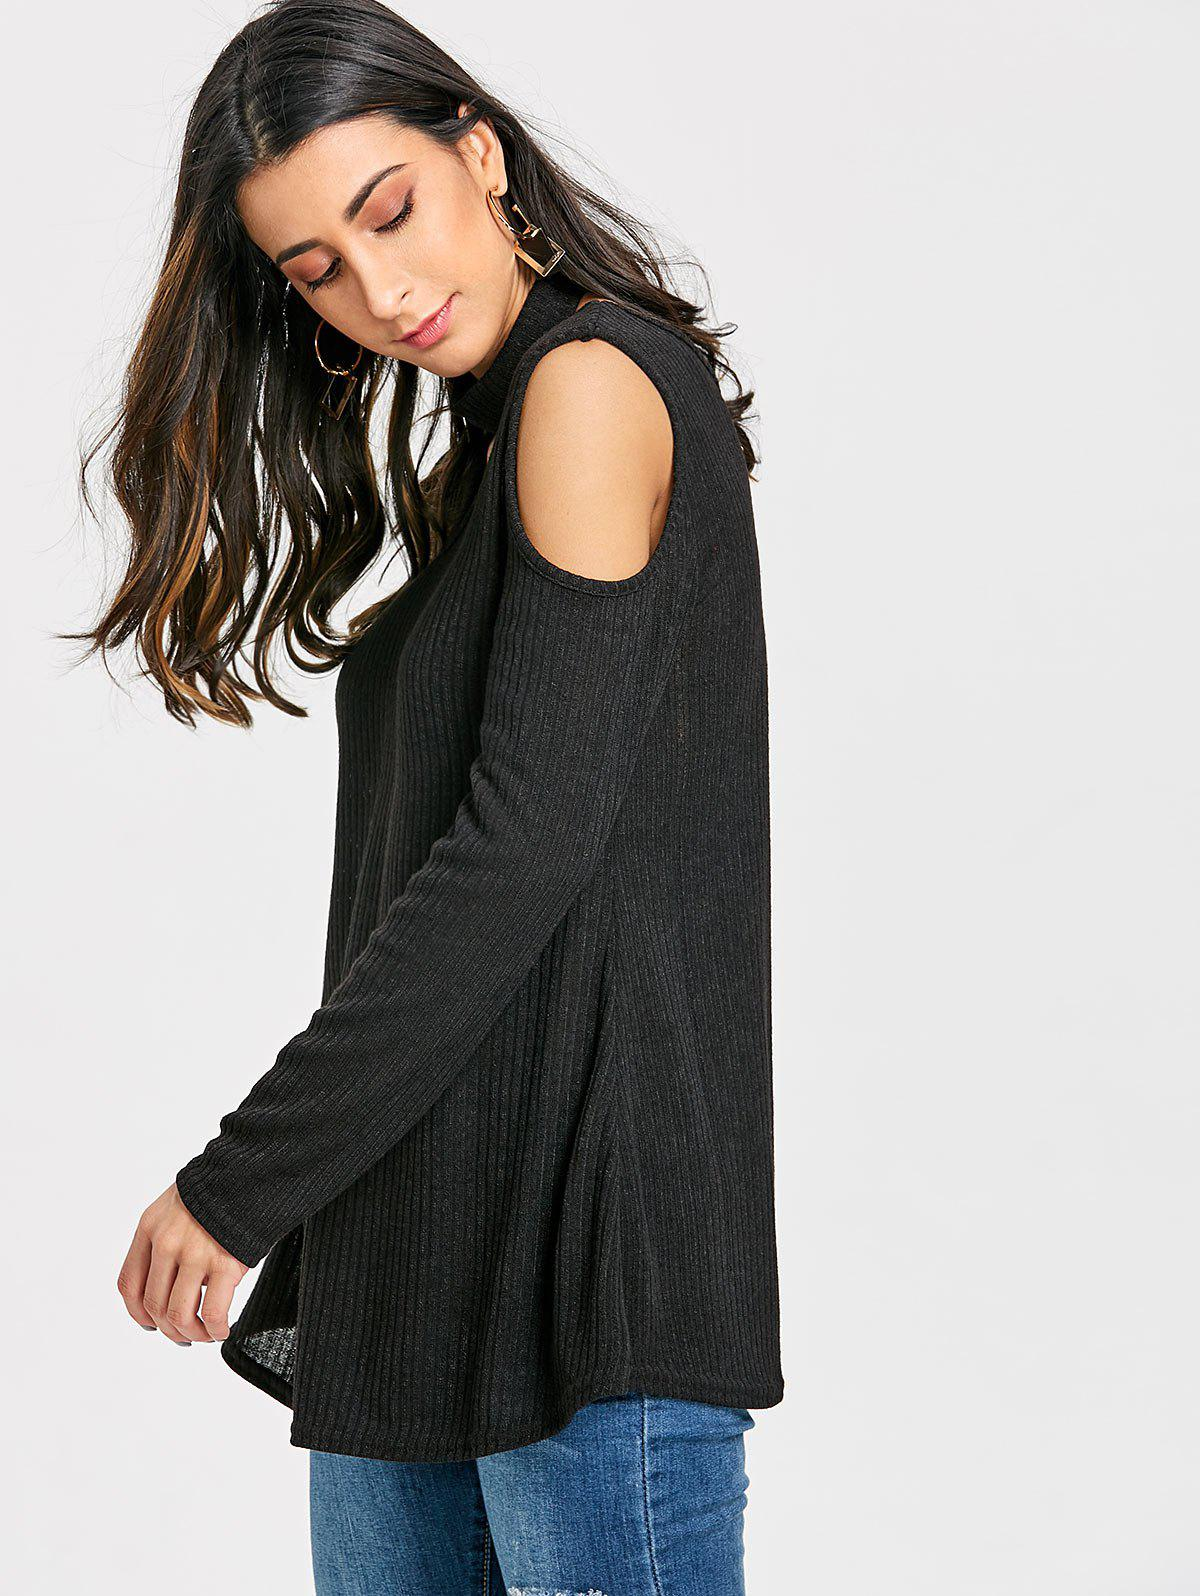 V Neck Cold Shoulder Sweater with Choker - BLACK S